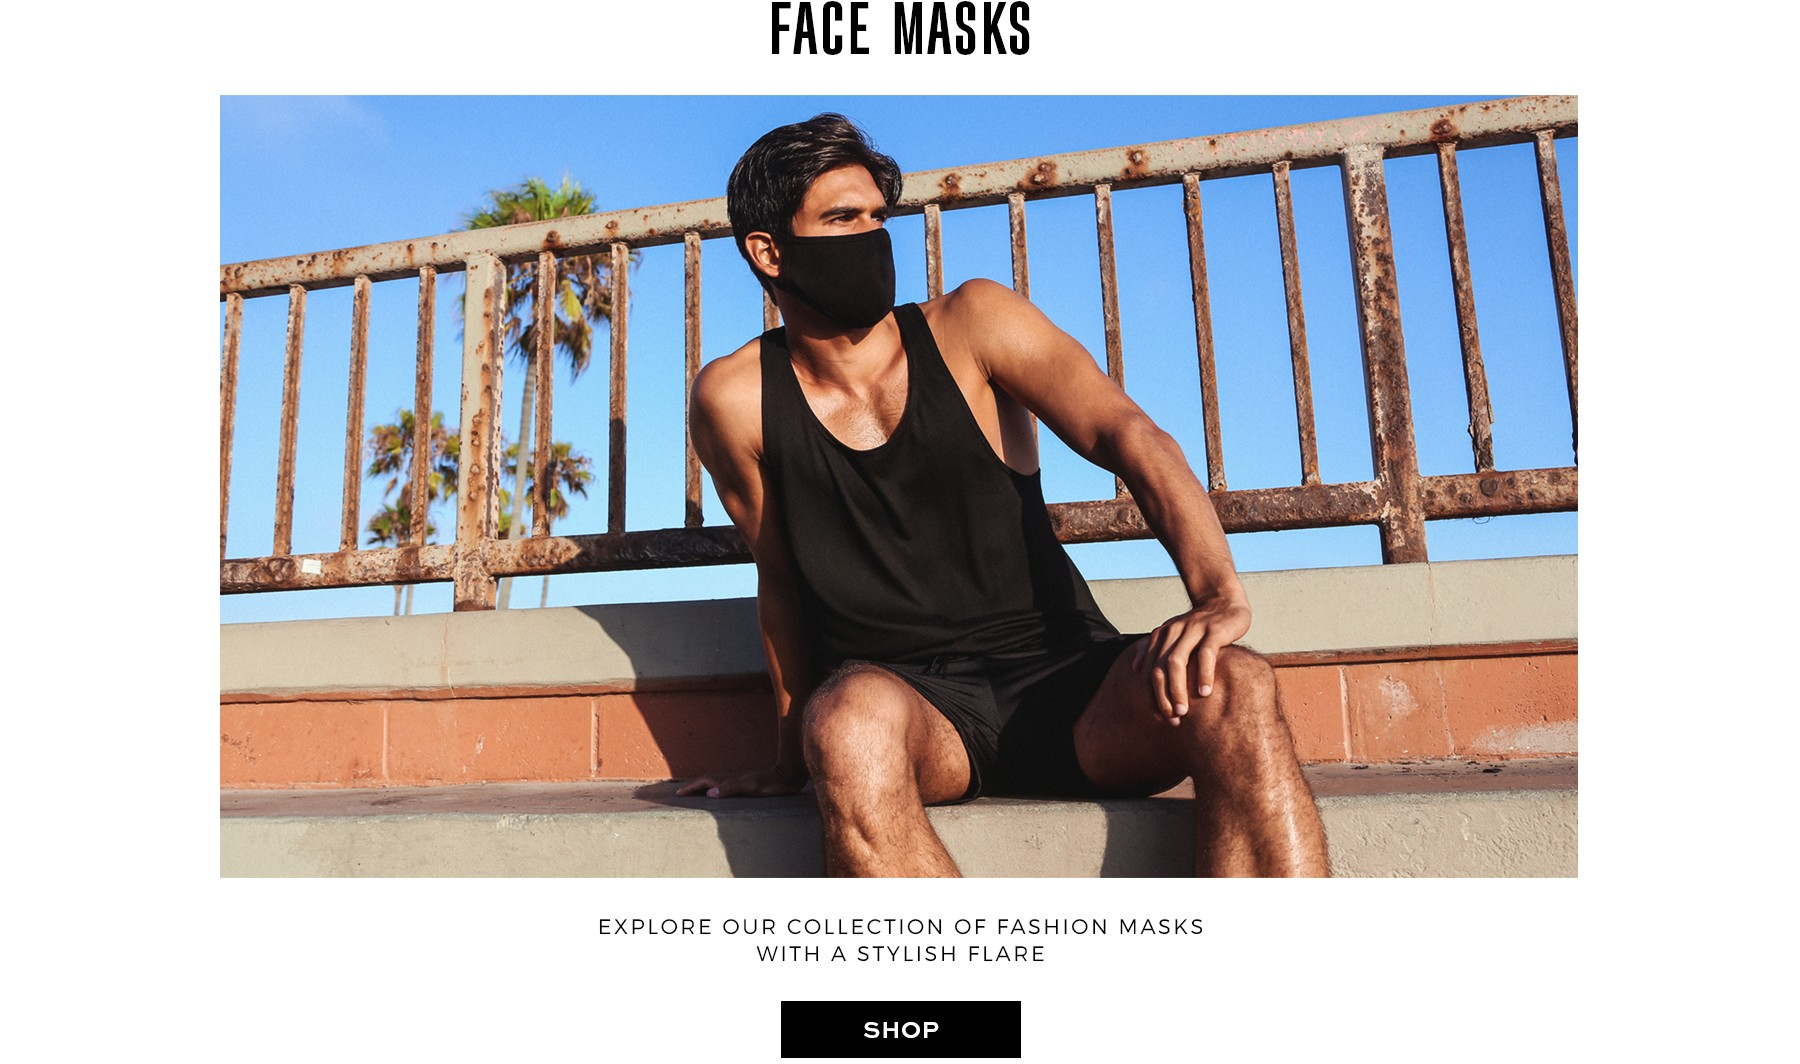 Surfer dude wearing black clothing and face mask